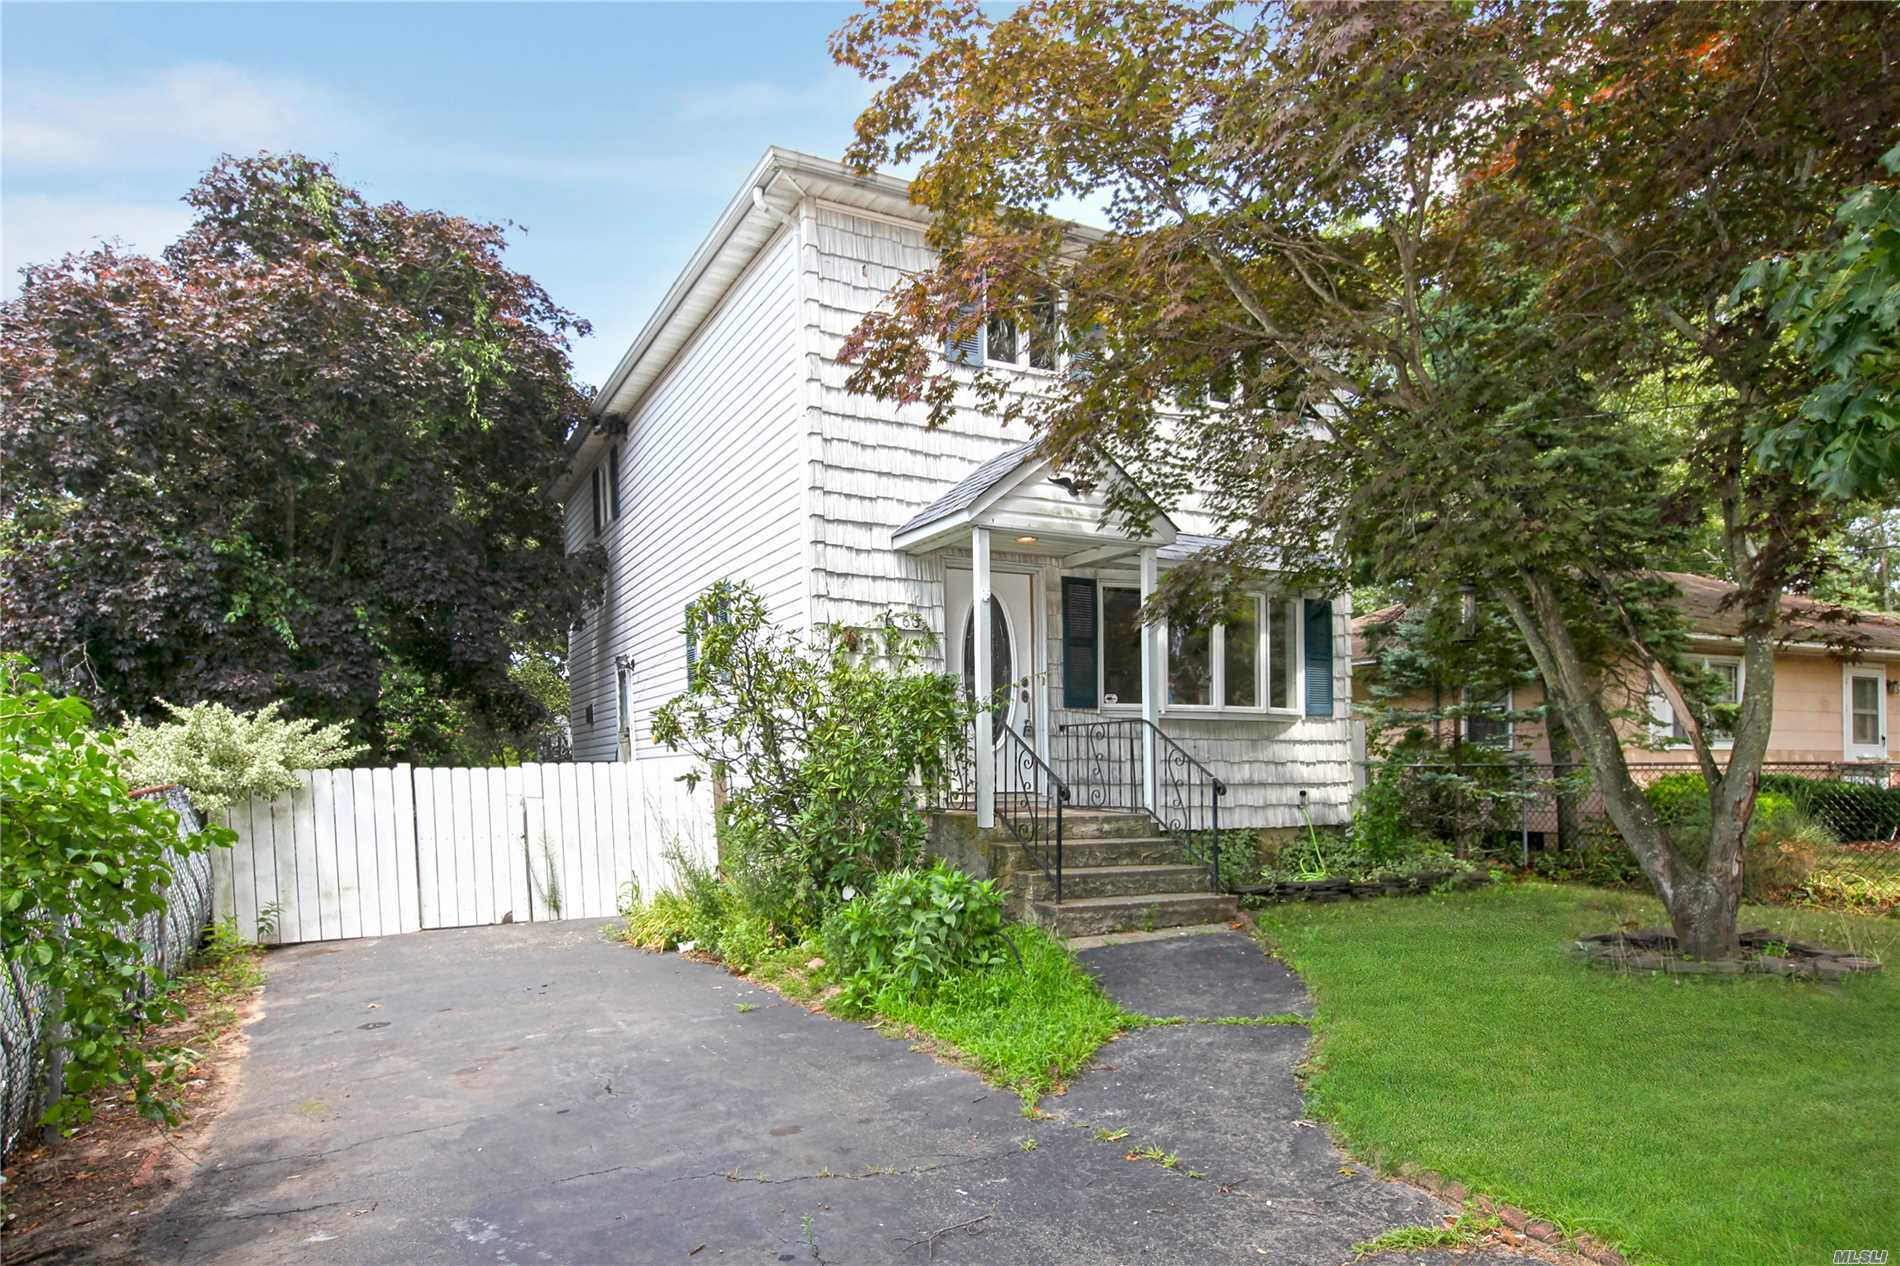 63 E Engelke St - Patchogue, New York